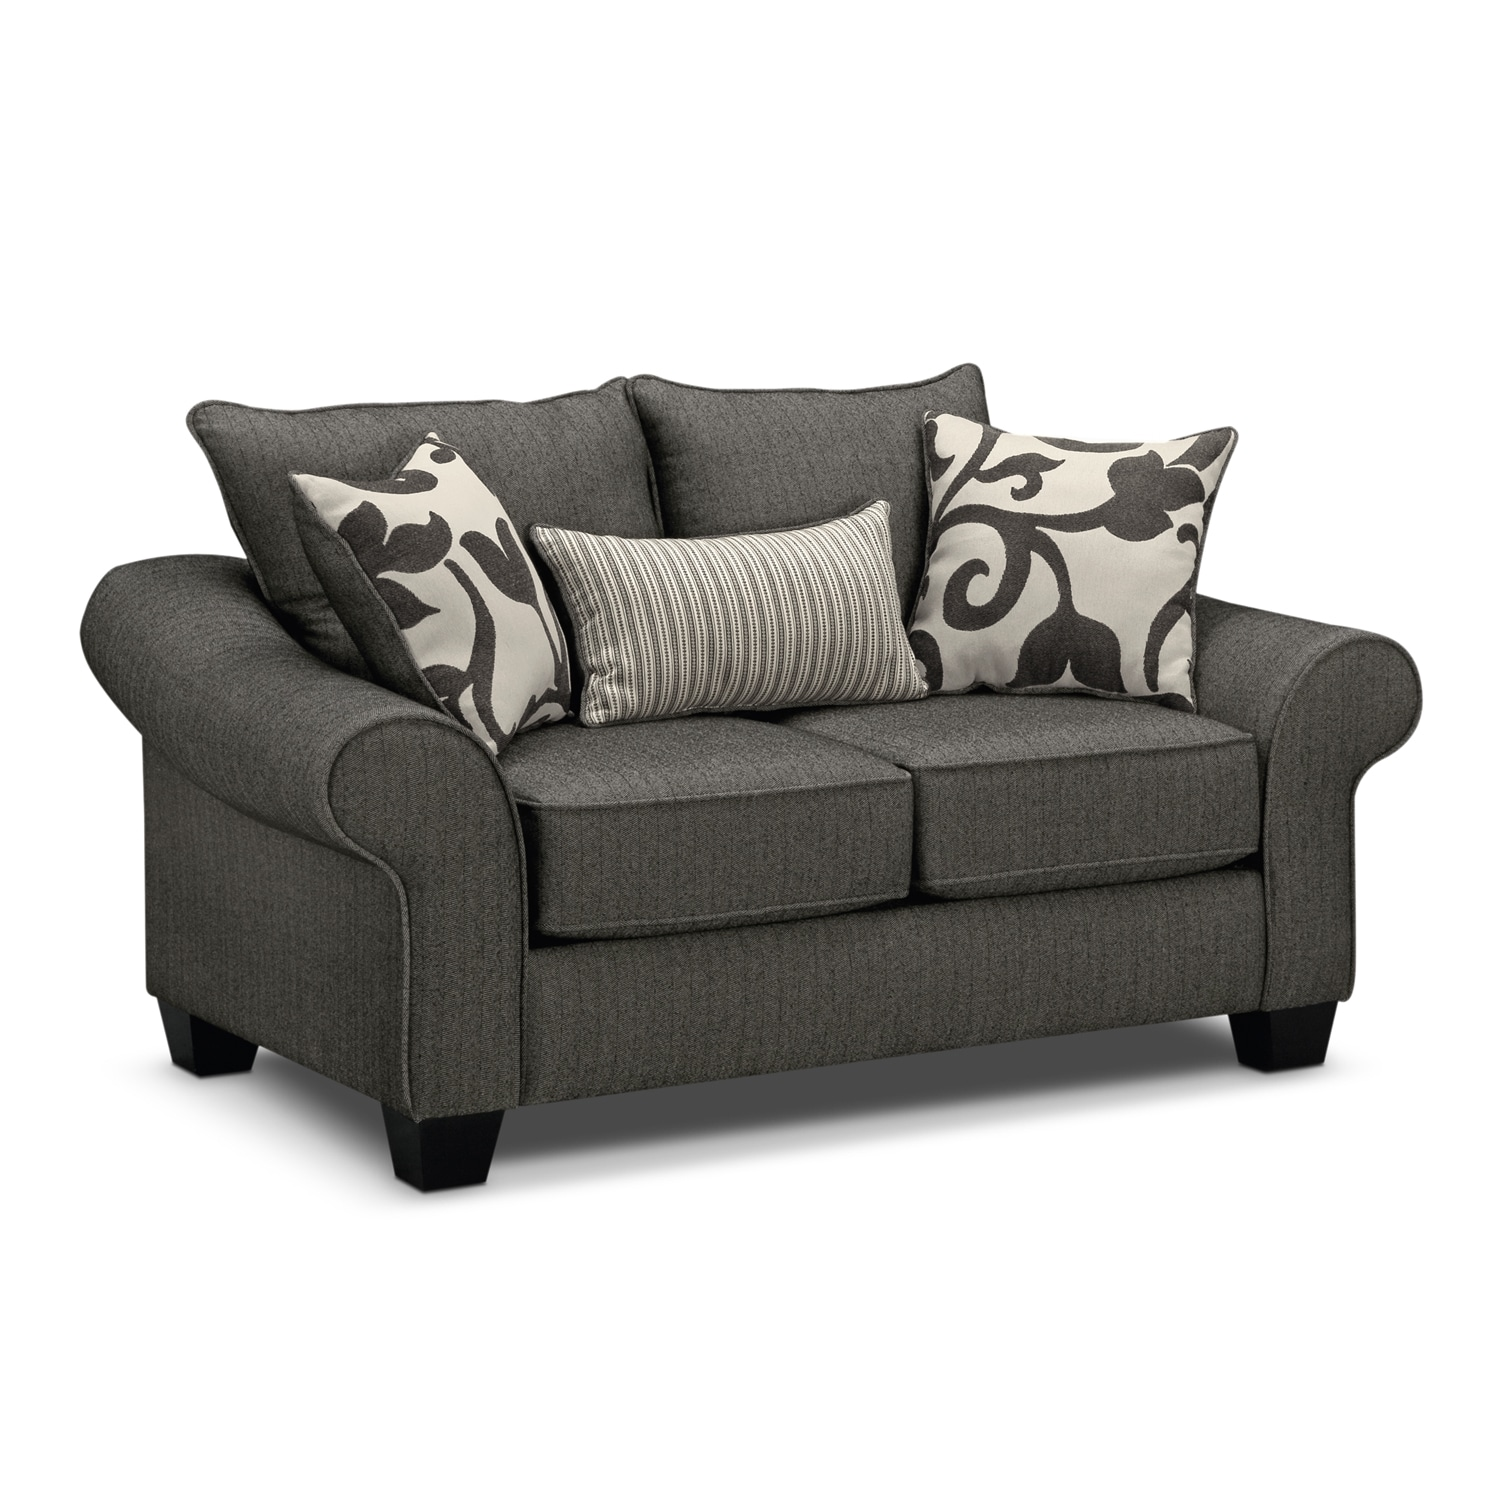 Living Room Furniture - Colette Gray Loveseat